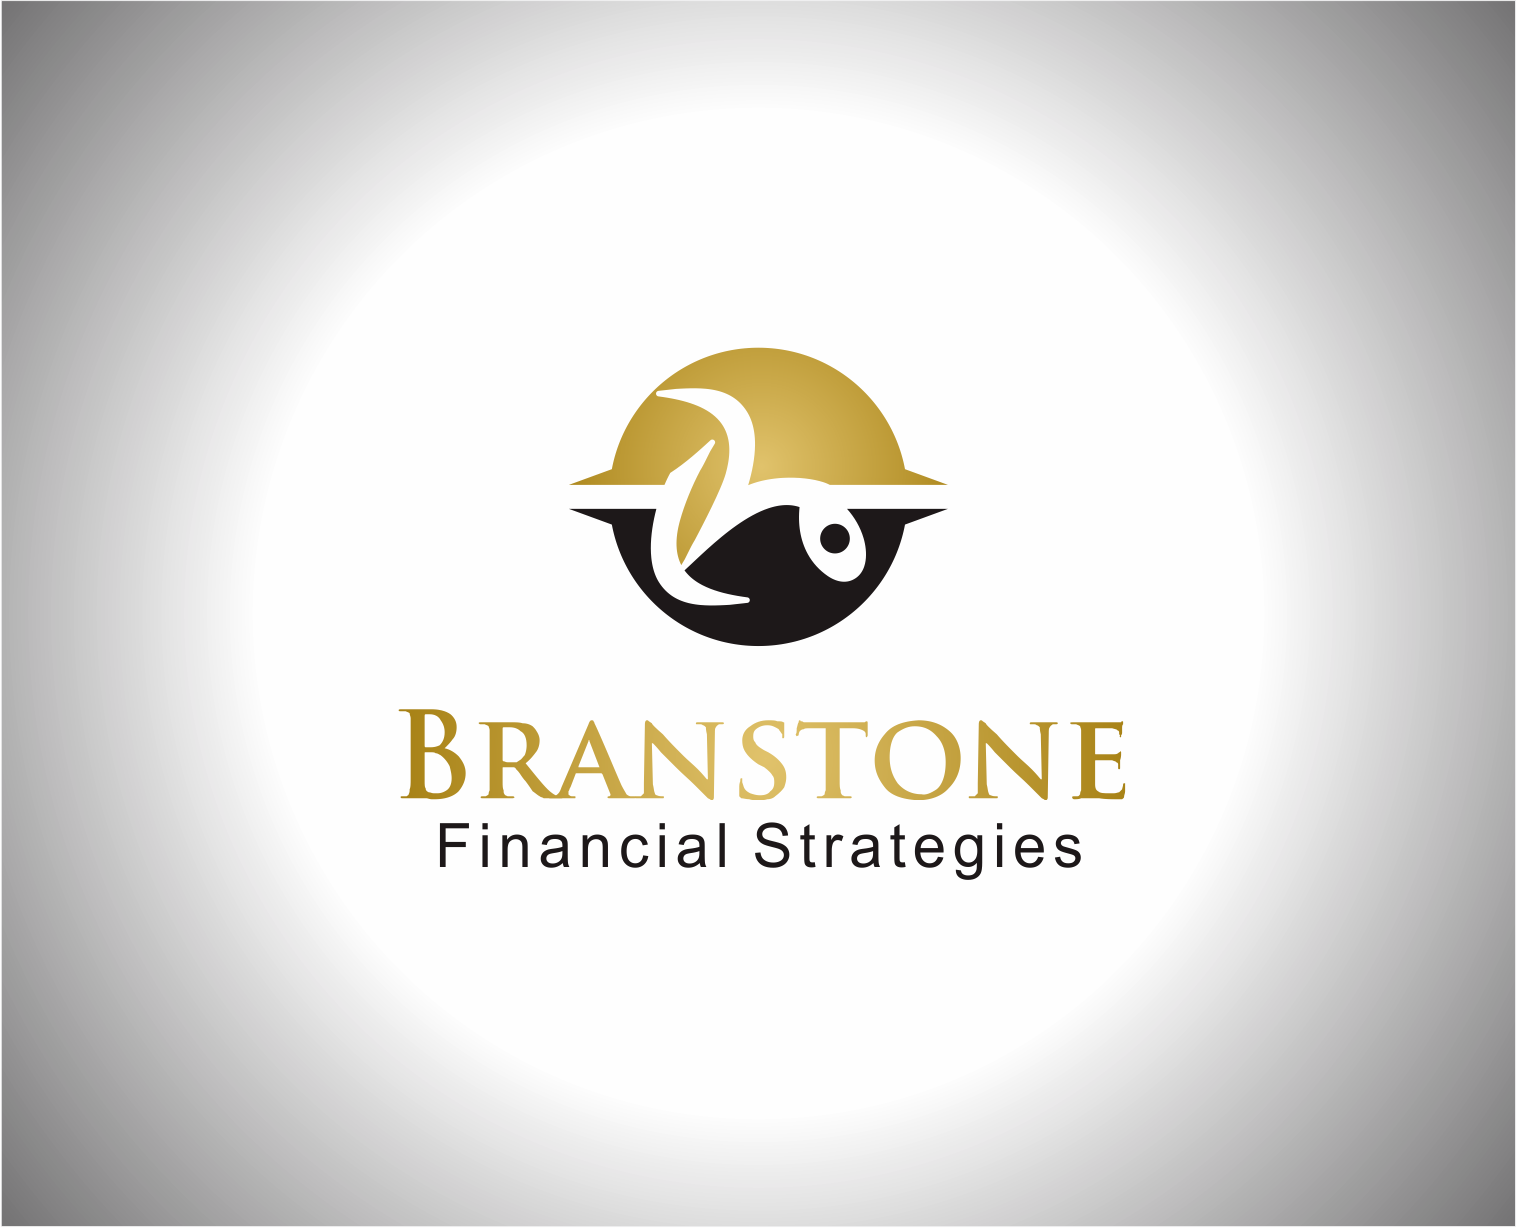 Logo Design by Armada Jamaluddin - Entry No. 202 in the Logo Design Contest Inspiring Logo Design for Branstone Financial Strategies.